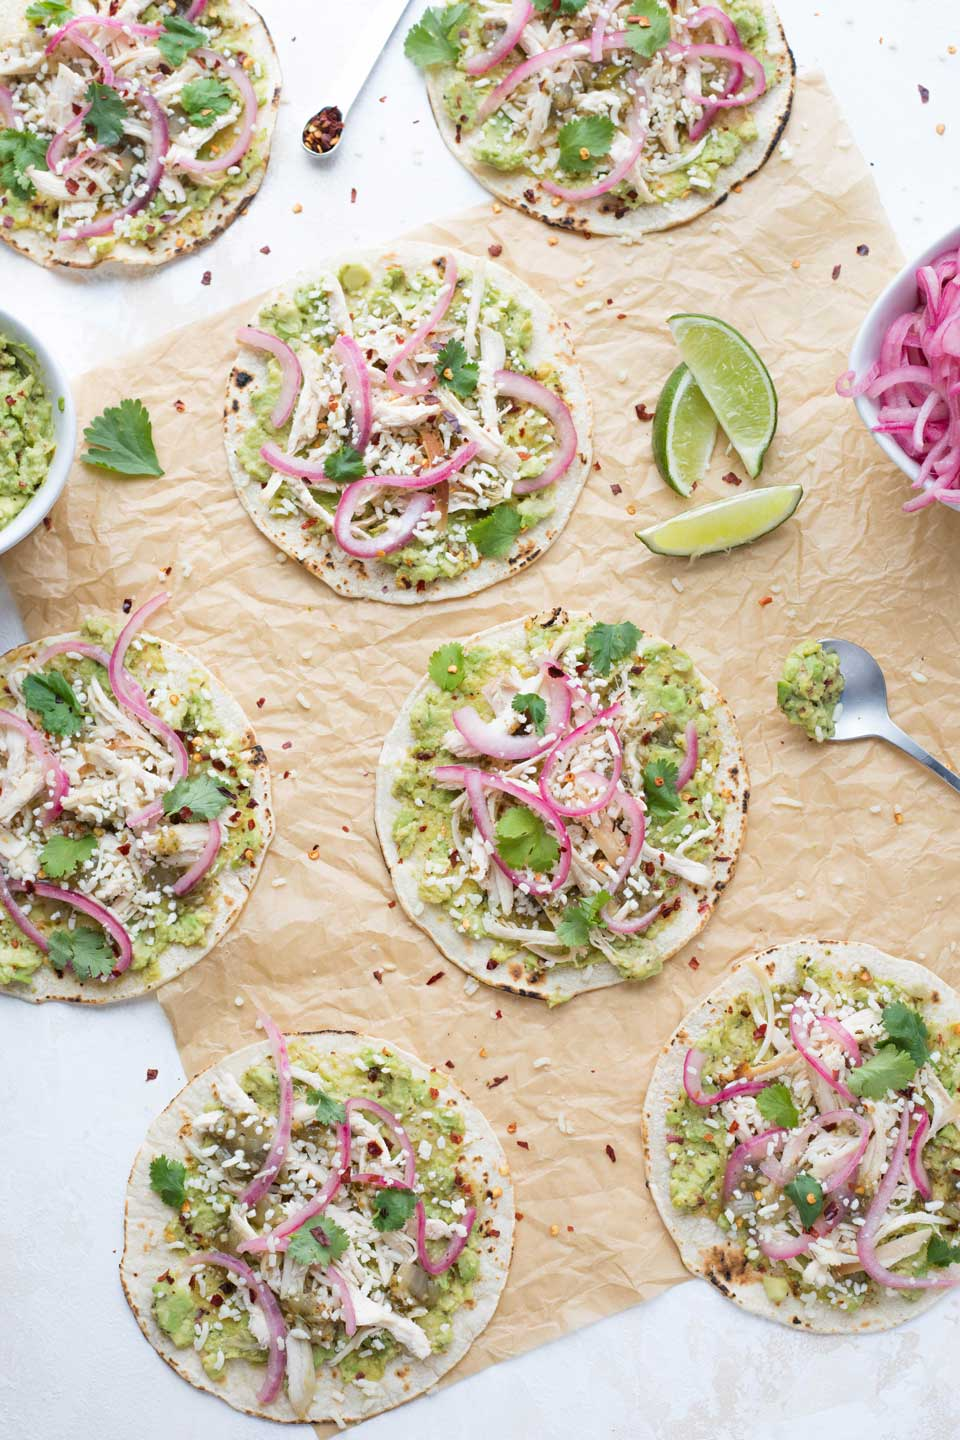 Your Taco Tuesday will never be the same! This super-easy Rotisserie Chicken Taco recipe has big, bold flavors and can be totally prepped ahead!